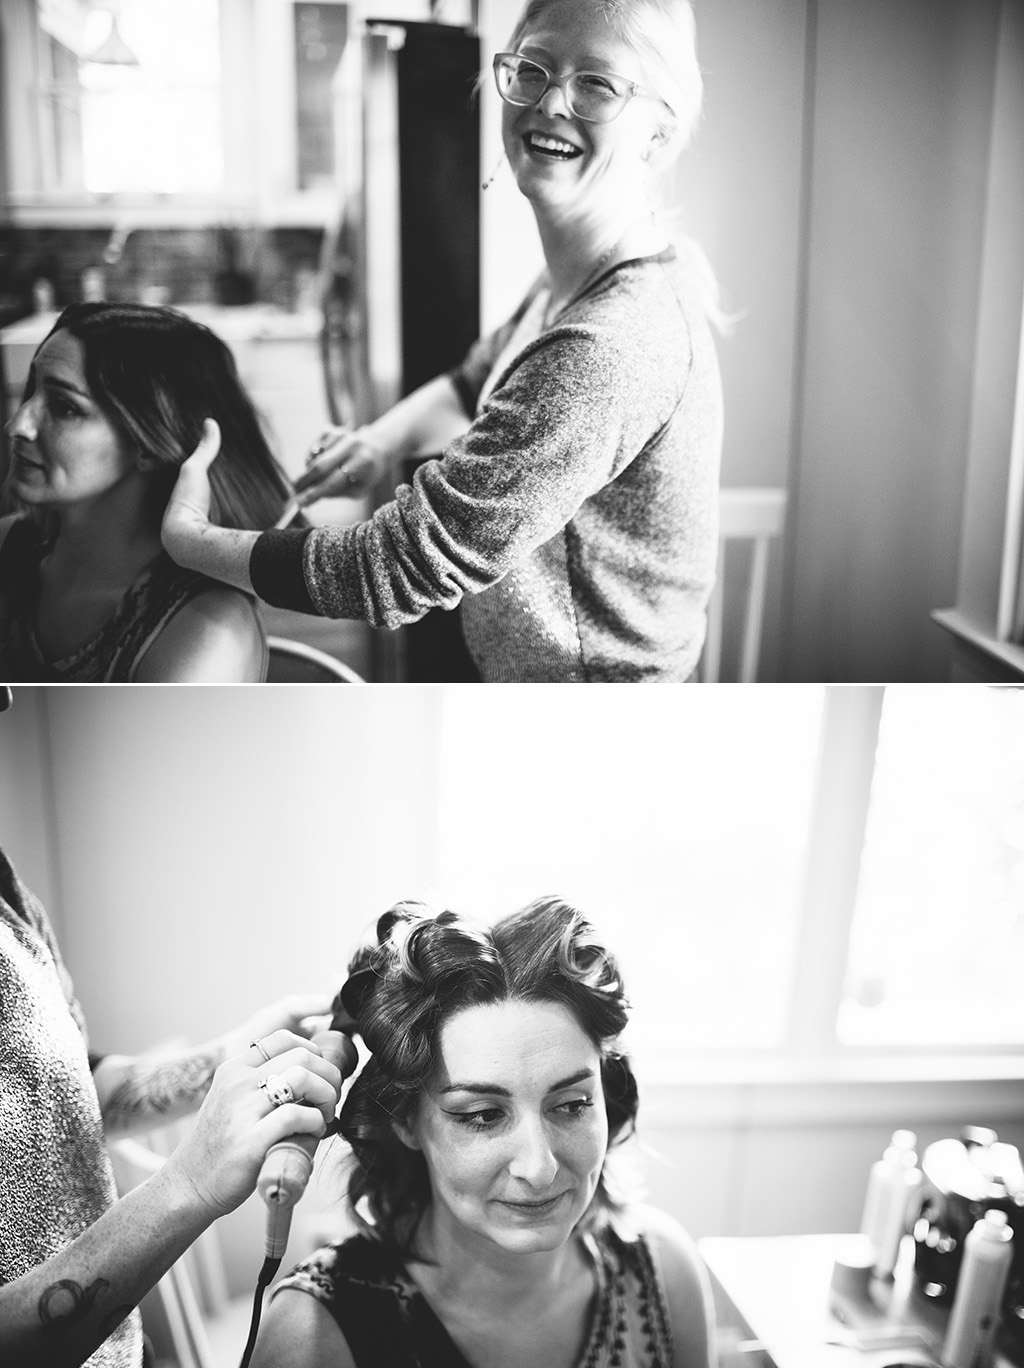 Bohemian Wedding Photographs // Los Angeles Wedding Photographer